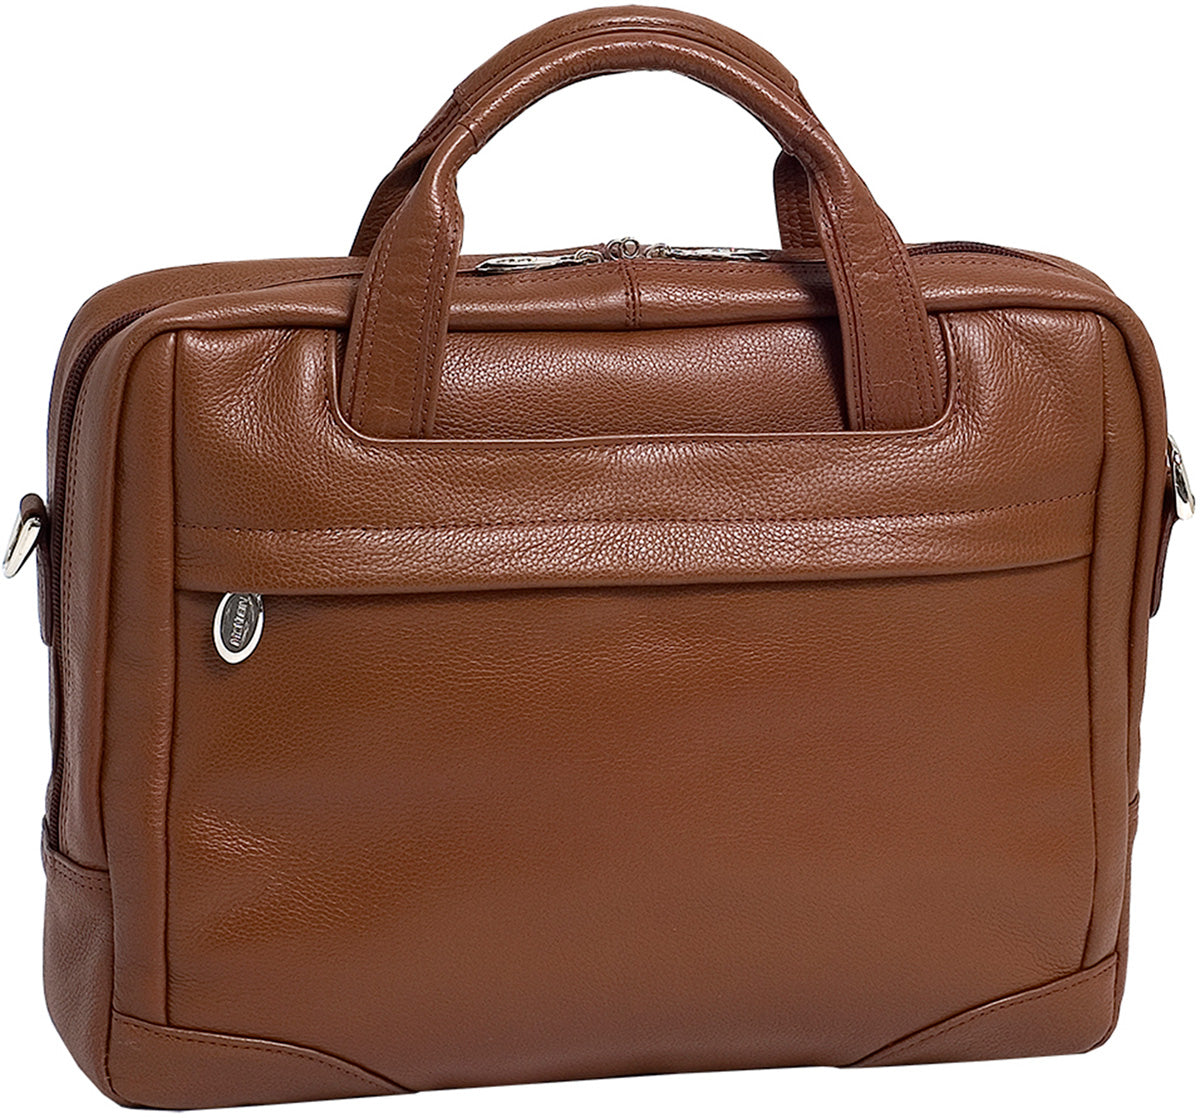 McKlein S Series Bridgeport Leather Large Laptop Brief